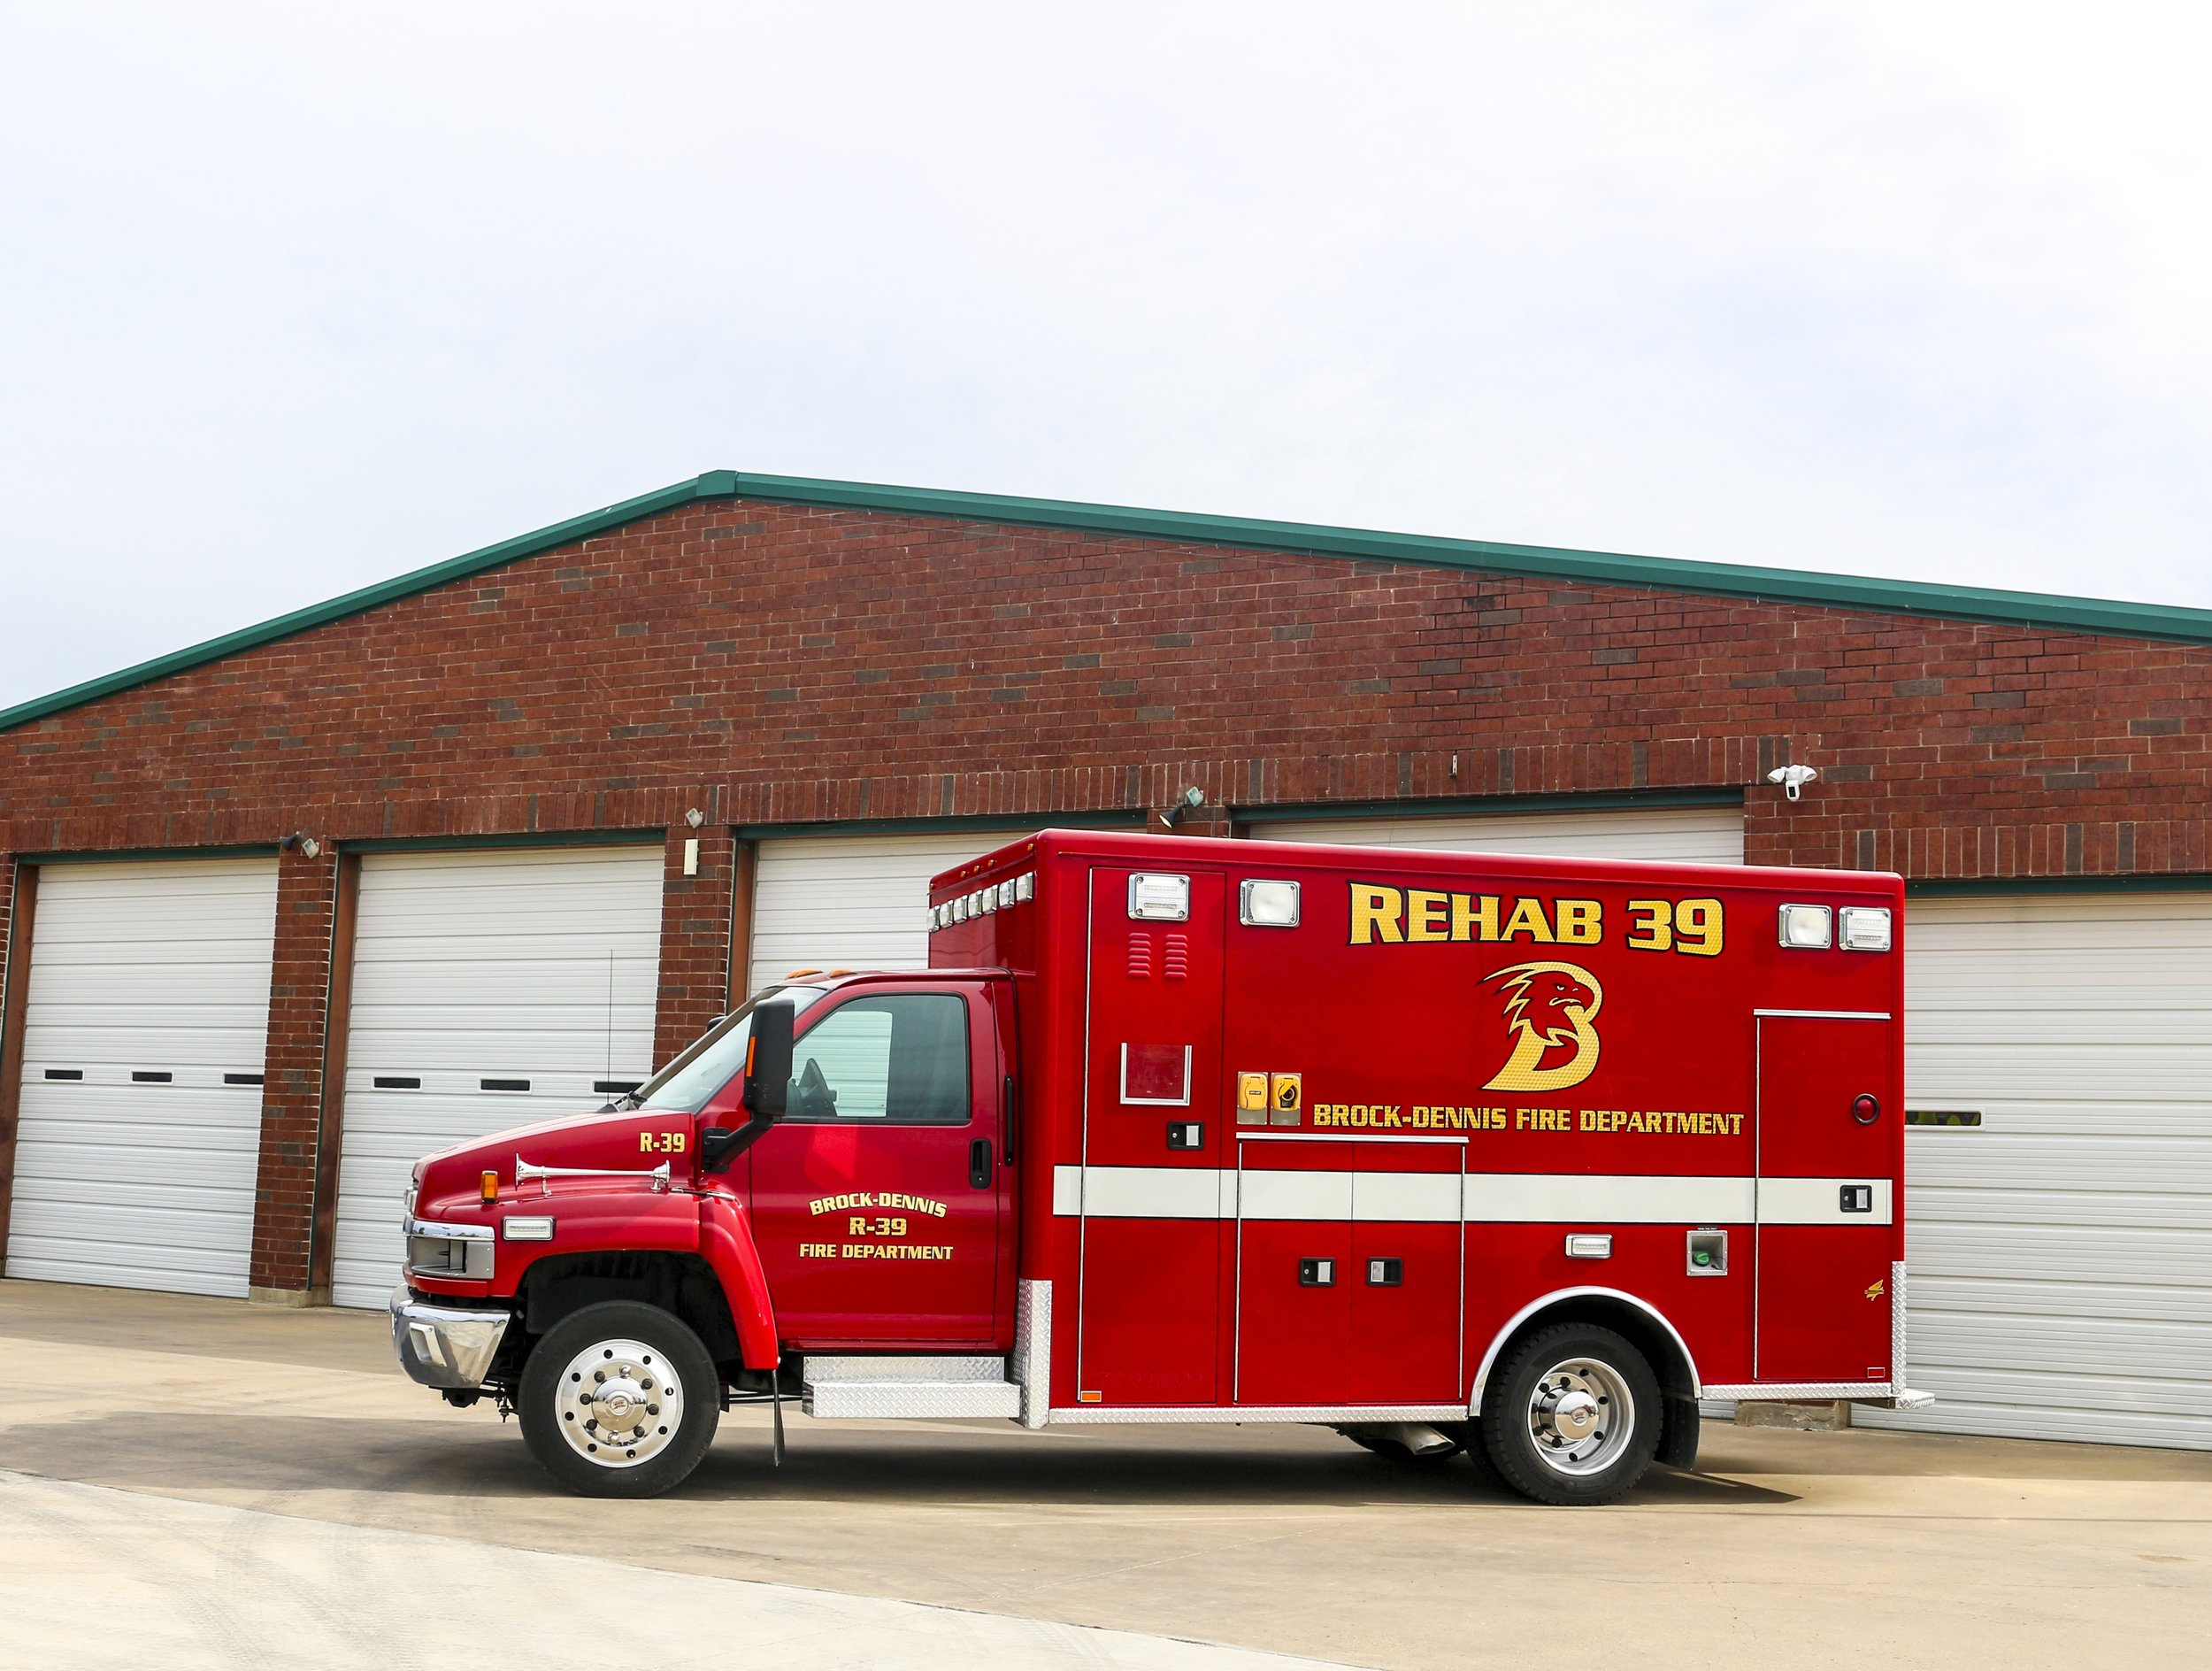 Rehab 39 - This 2008 AEV ambulance is located at Station 2 and was purchased 2 years ago. It's used as a rehab unit on large fire scenes to help our firefighters recover and provide assistance. It is responded by our auxiliary staff.